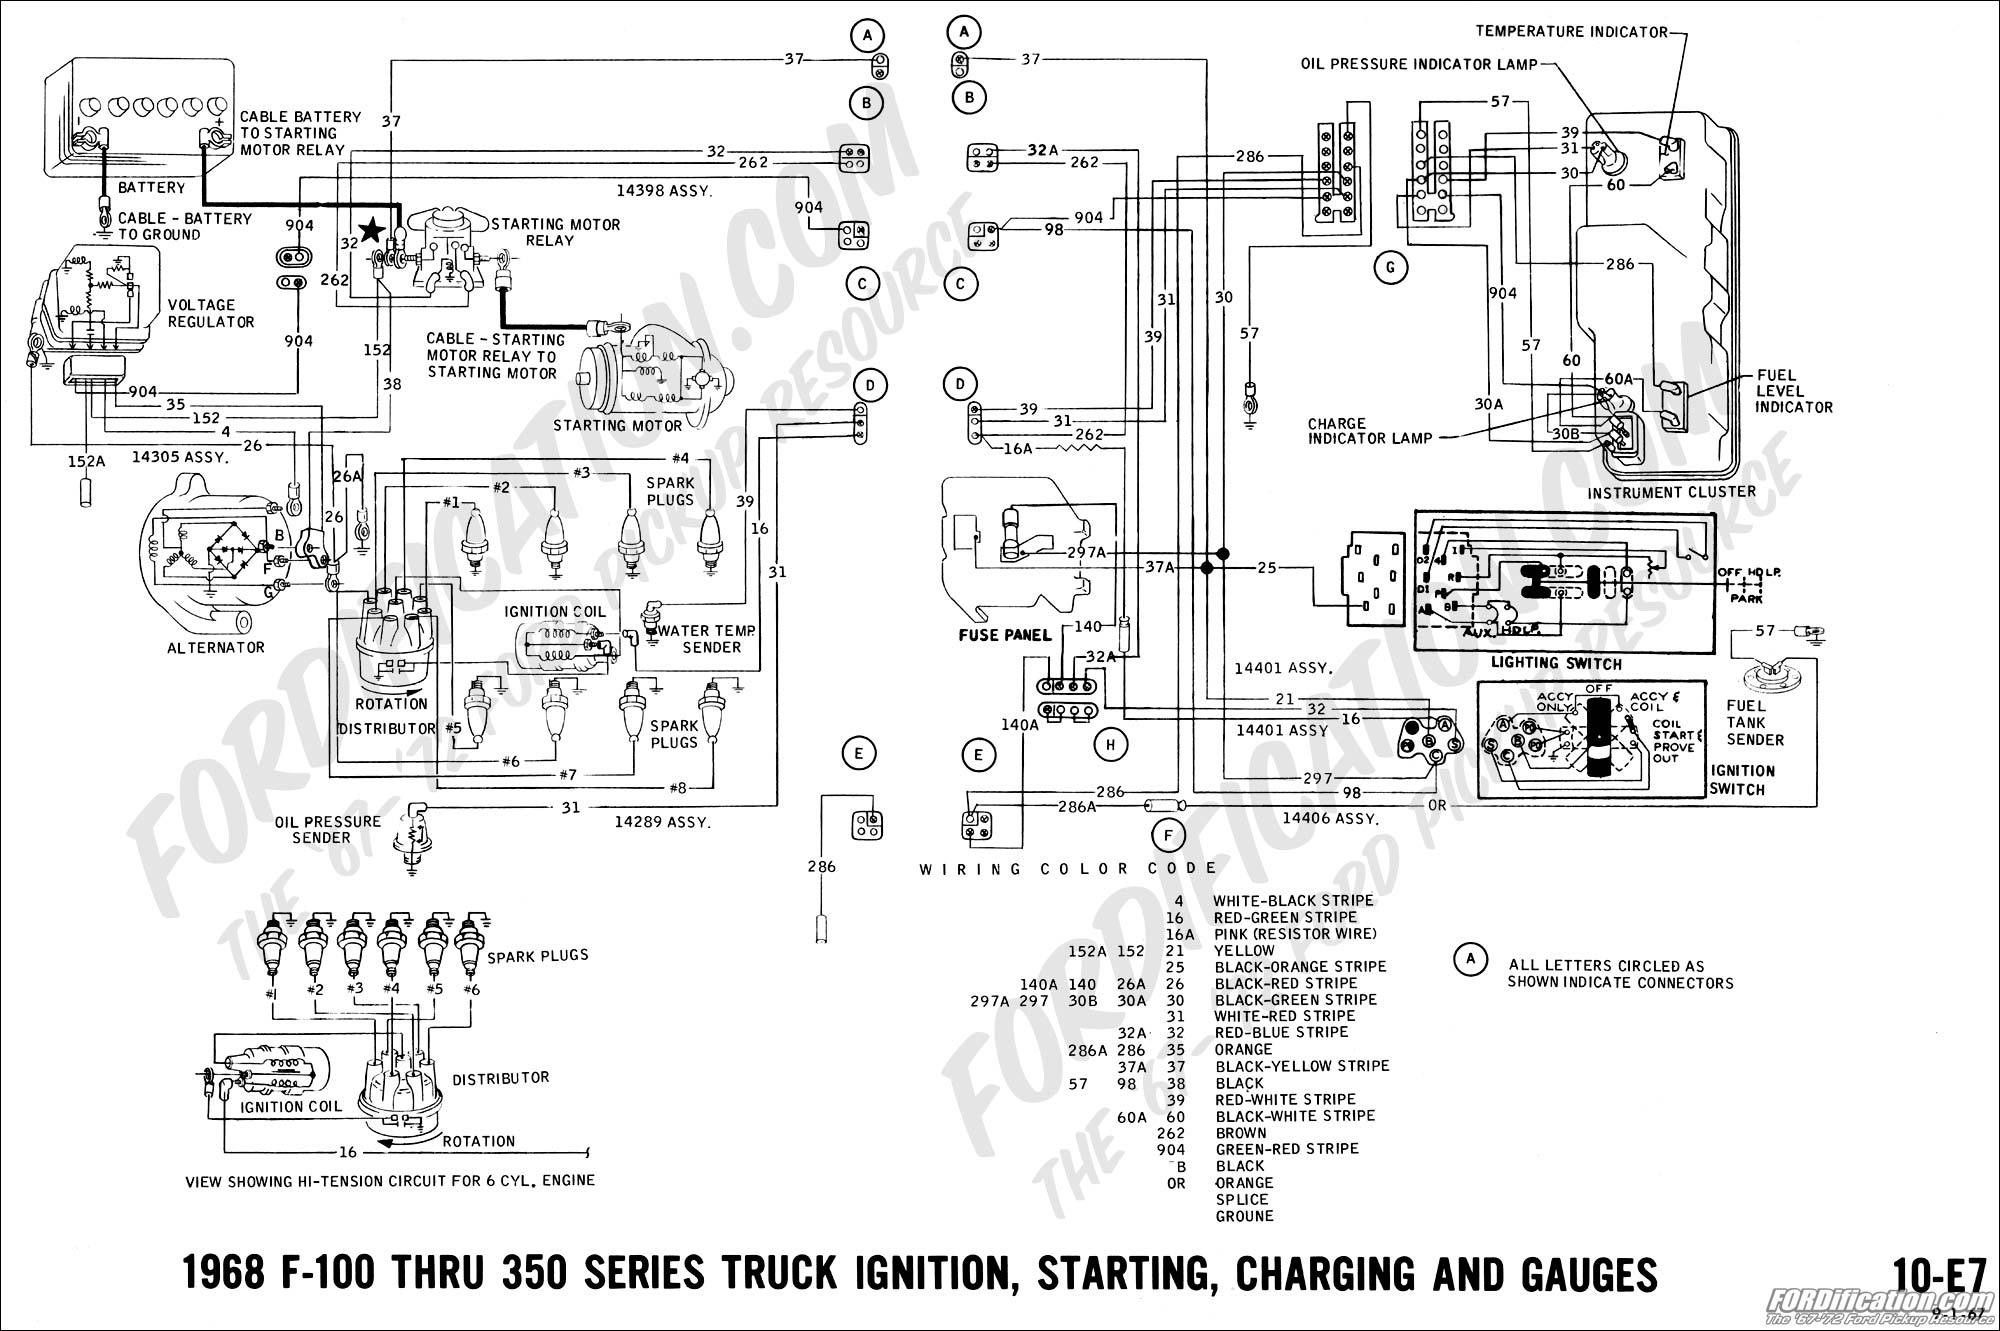 alternator wiring a mess ford truck enthusiasts forums. Black Bedroom Furniture Sets. Home Design Ideas